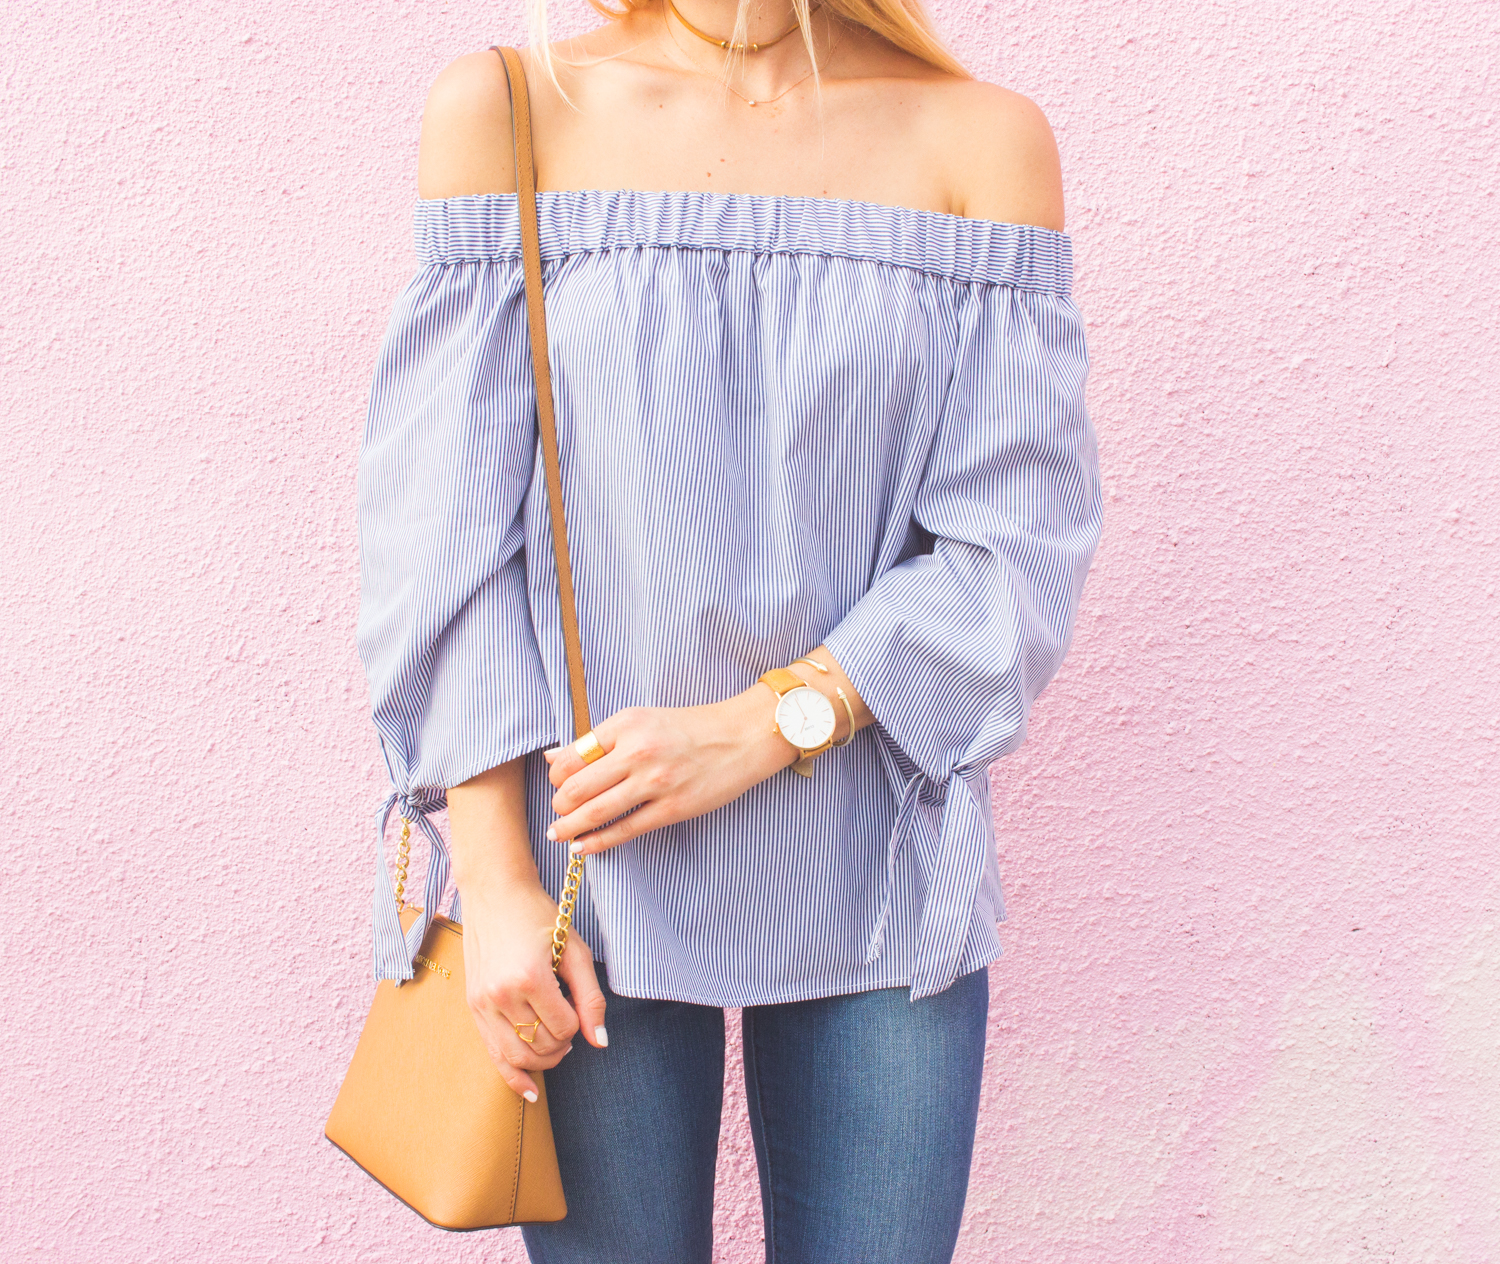 livvyland-blog-olivia-watson-austin-texas-articles-of-society-distressed-skinny-jeans-topshop-off-shoulder-tie-sleeves-striped-top-fashion-blogger-outfit-6